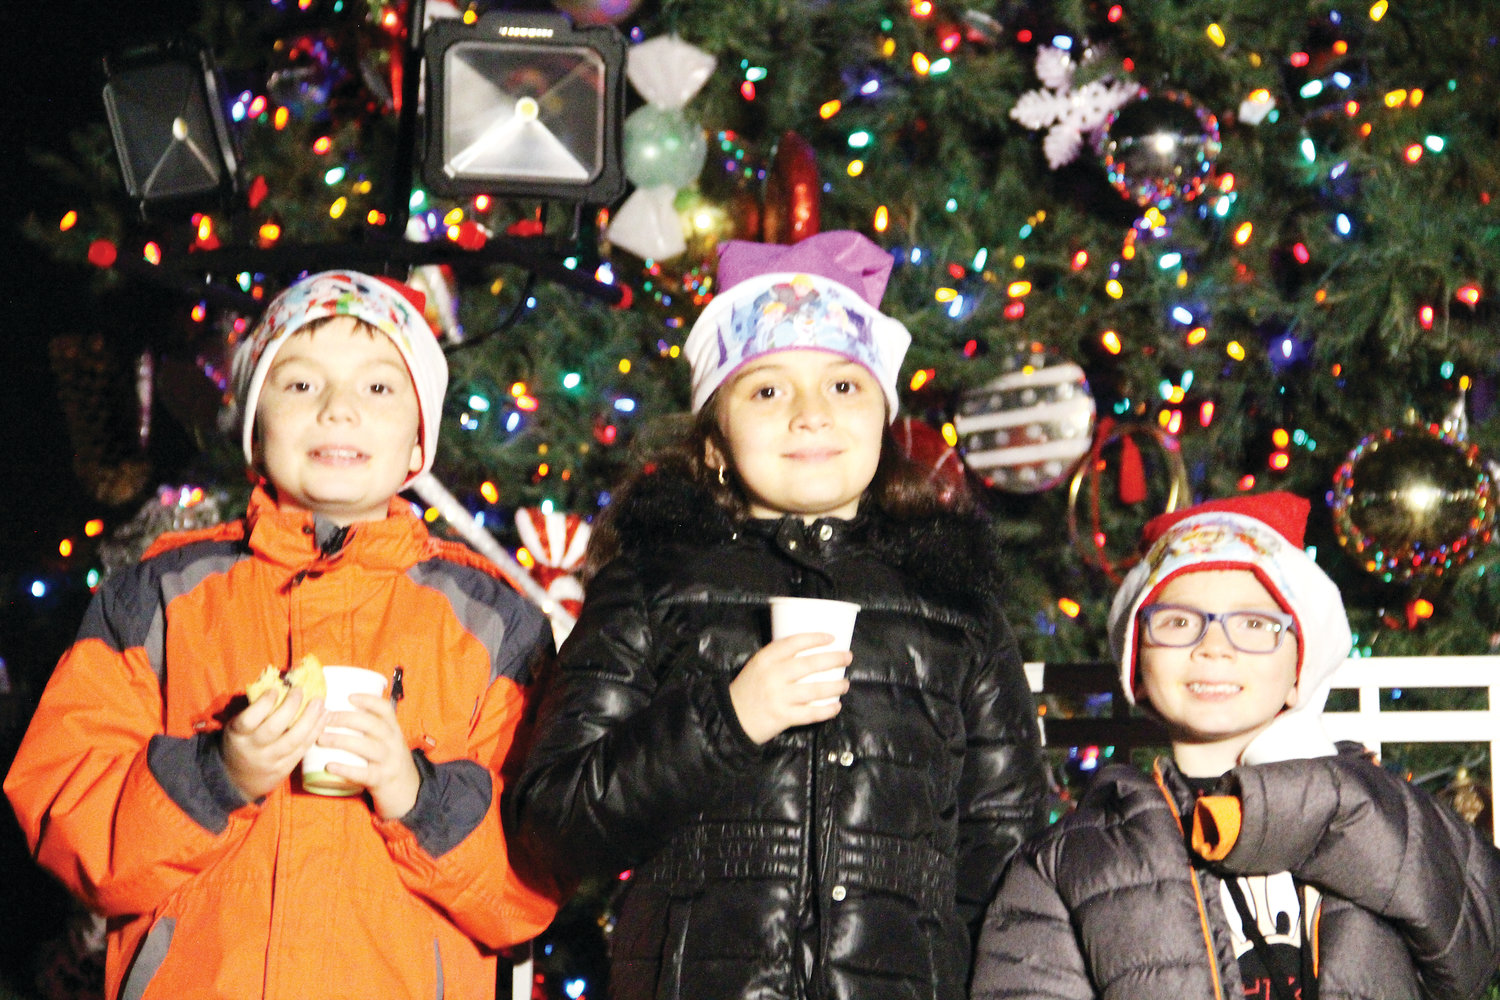 From left, Afrain Iniguez, 10; Sofia Iniguez, 8; and Pedro Iniguez, 5, pose for photos in front of the Christmas tree at the Englewood Civic Center Dec. 1 at the Englewood Holiday Concert. Below: The Christmas tree, more than two dozen feet tall, in front of the Englewood Civic Center Dec. 1 at the Englewood Holiday Concert.